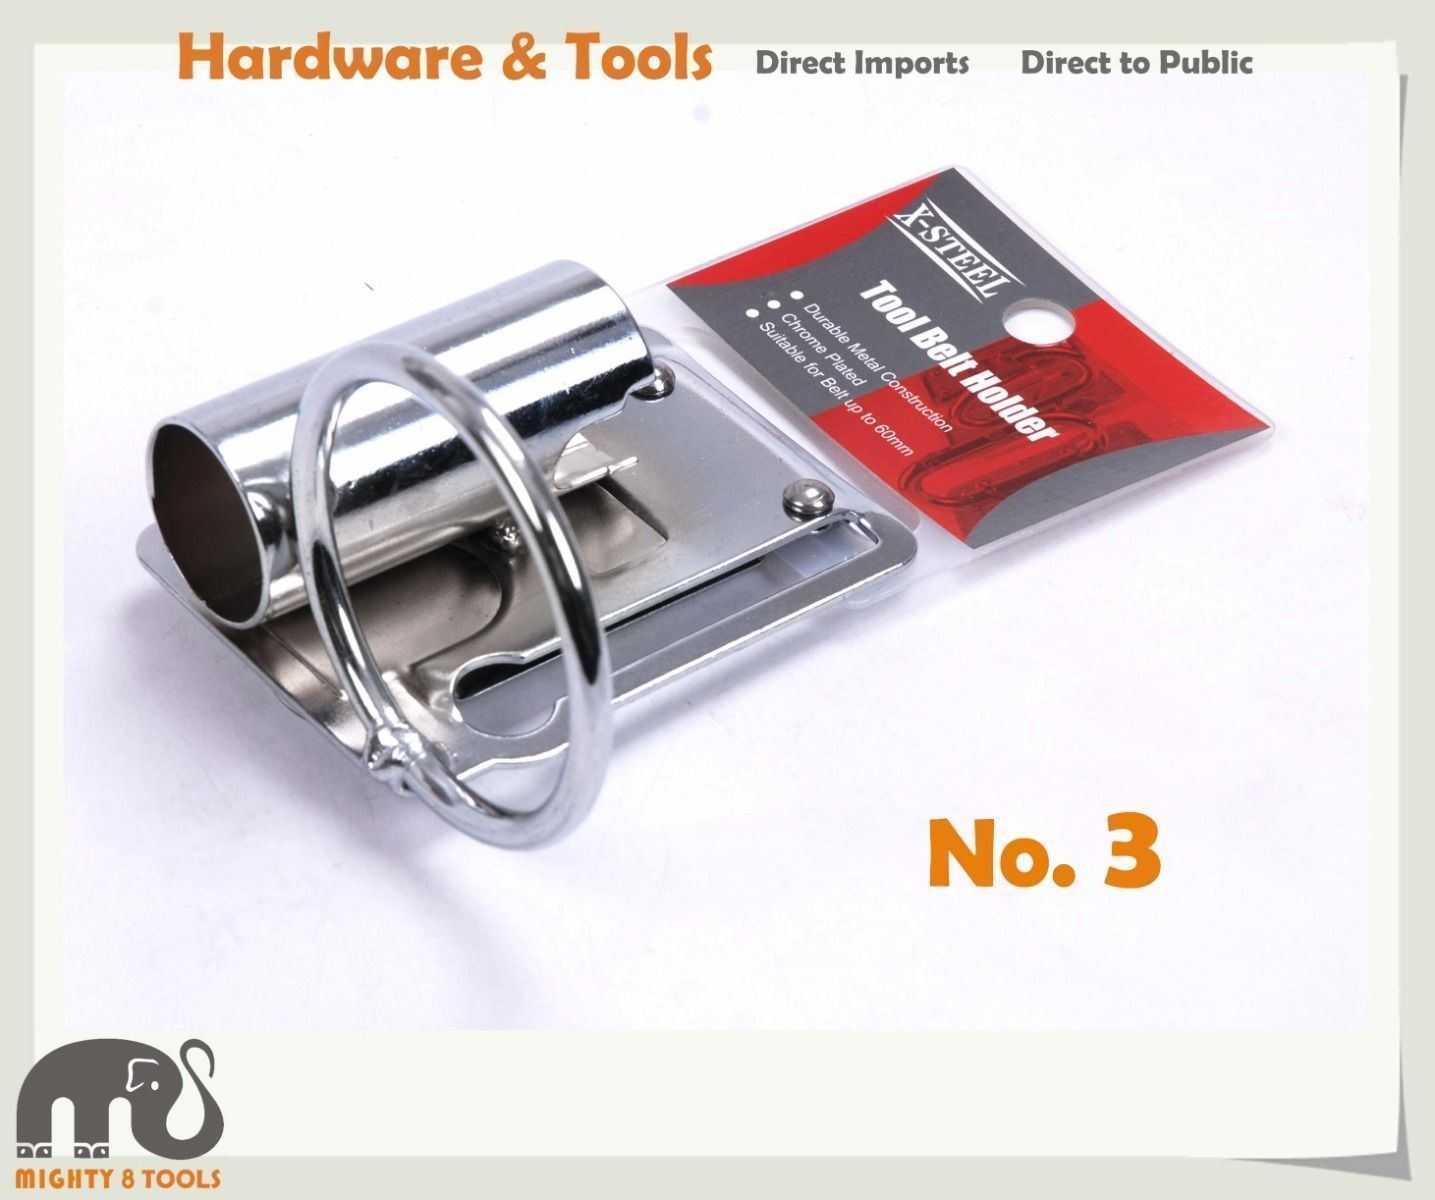 US $6 0 |Scaffolders Podger Hammers Frog Scaffold Ratchet Frog Nip Holder  Belt Holders #3-in Hammer from Tools on Aliexpress com | Alibaba Group